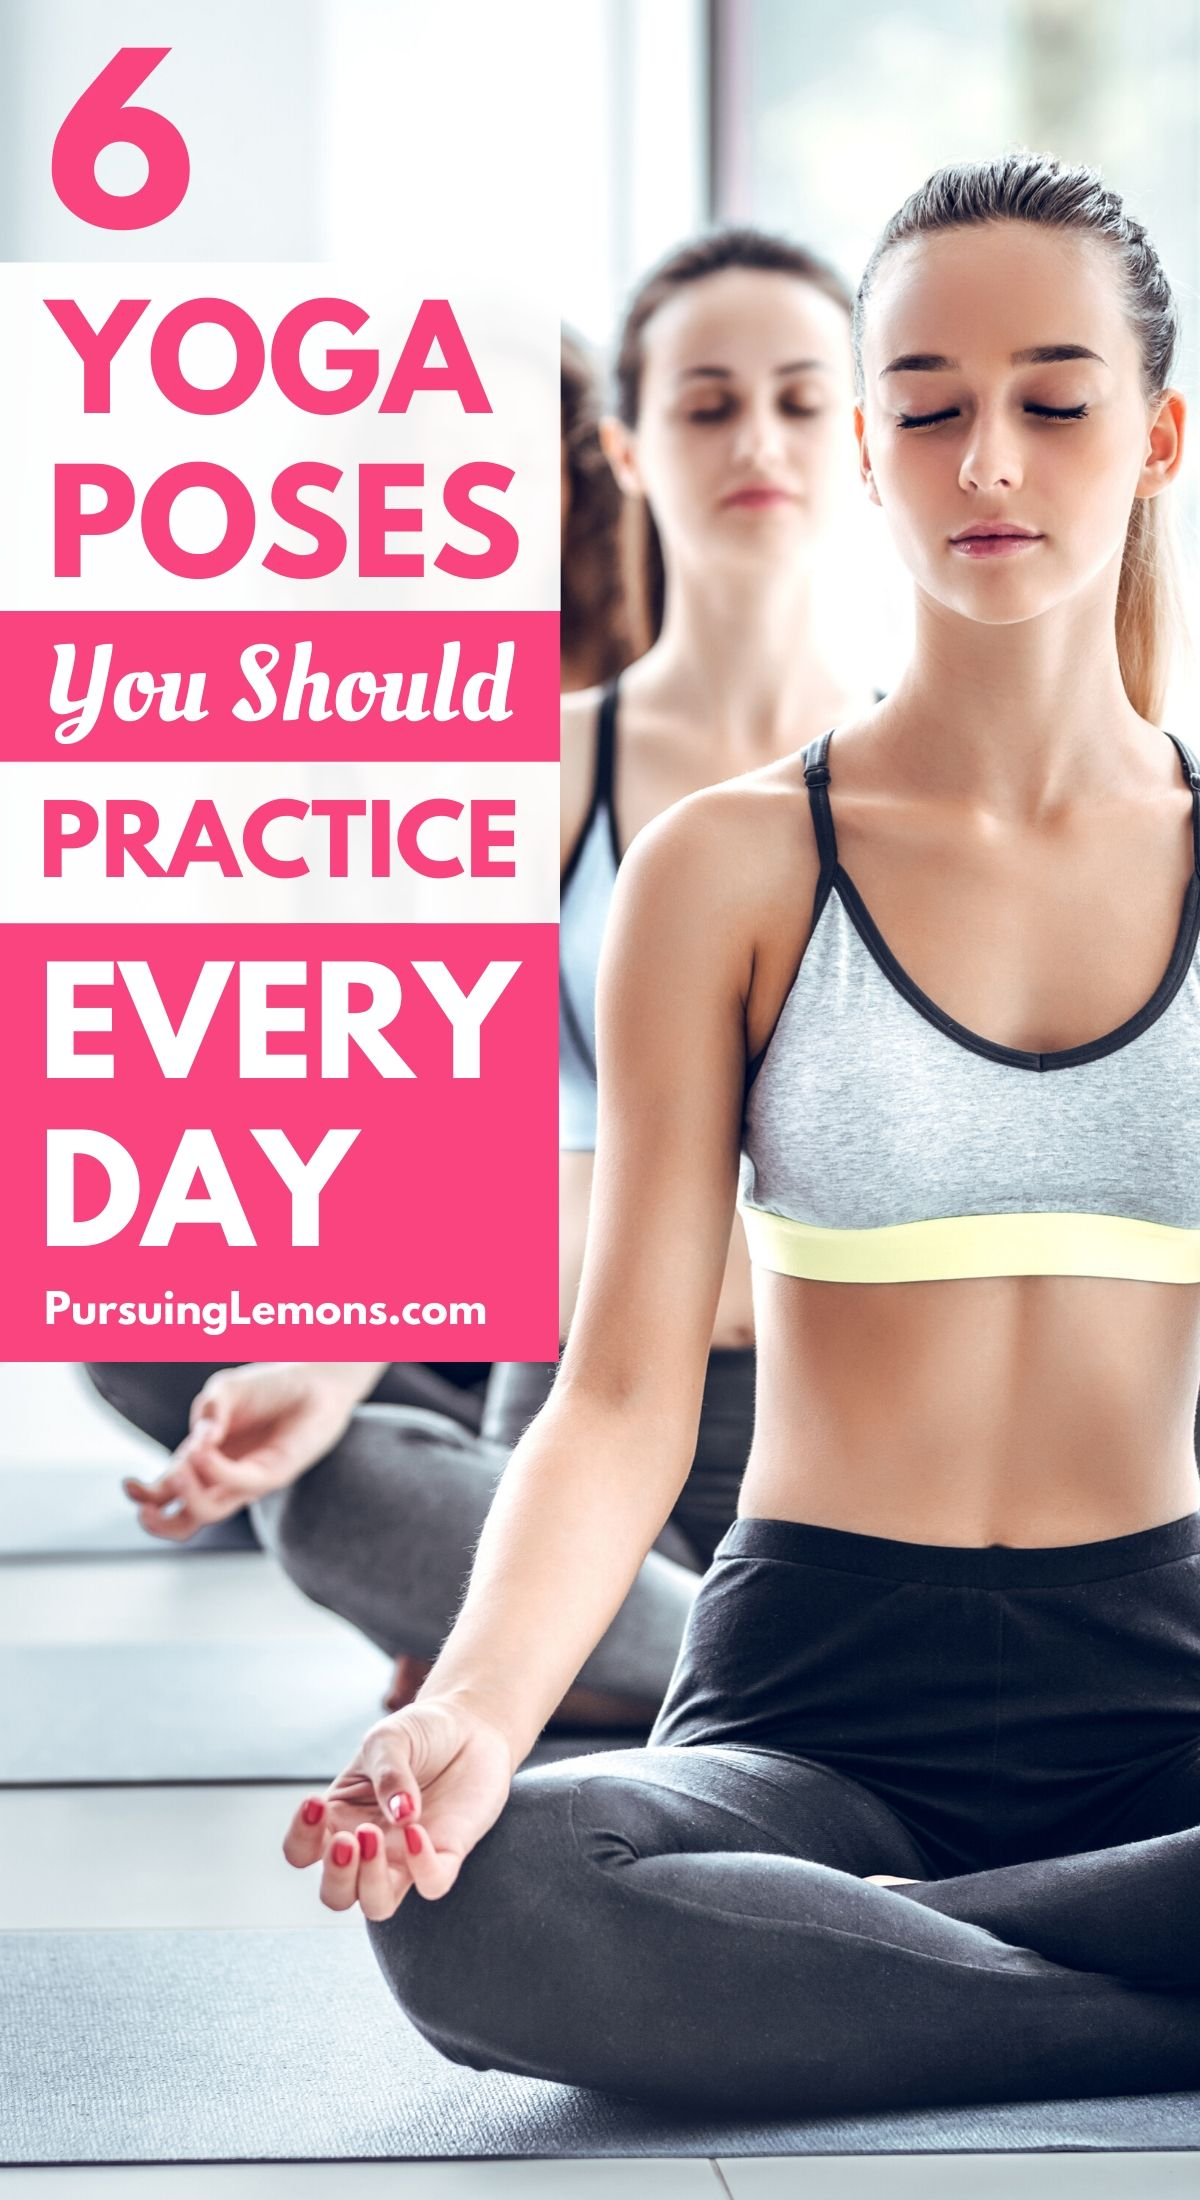 These are the 6 yoga poses you should do every day! They're easy to learn and will help you improve your yoga skills. It will also help to relieve tension, improve strength and energize your body. #yoga #yogaposes #yogaroutine